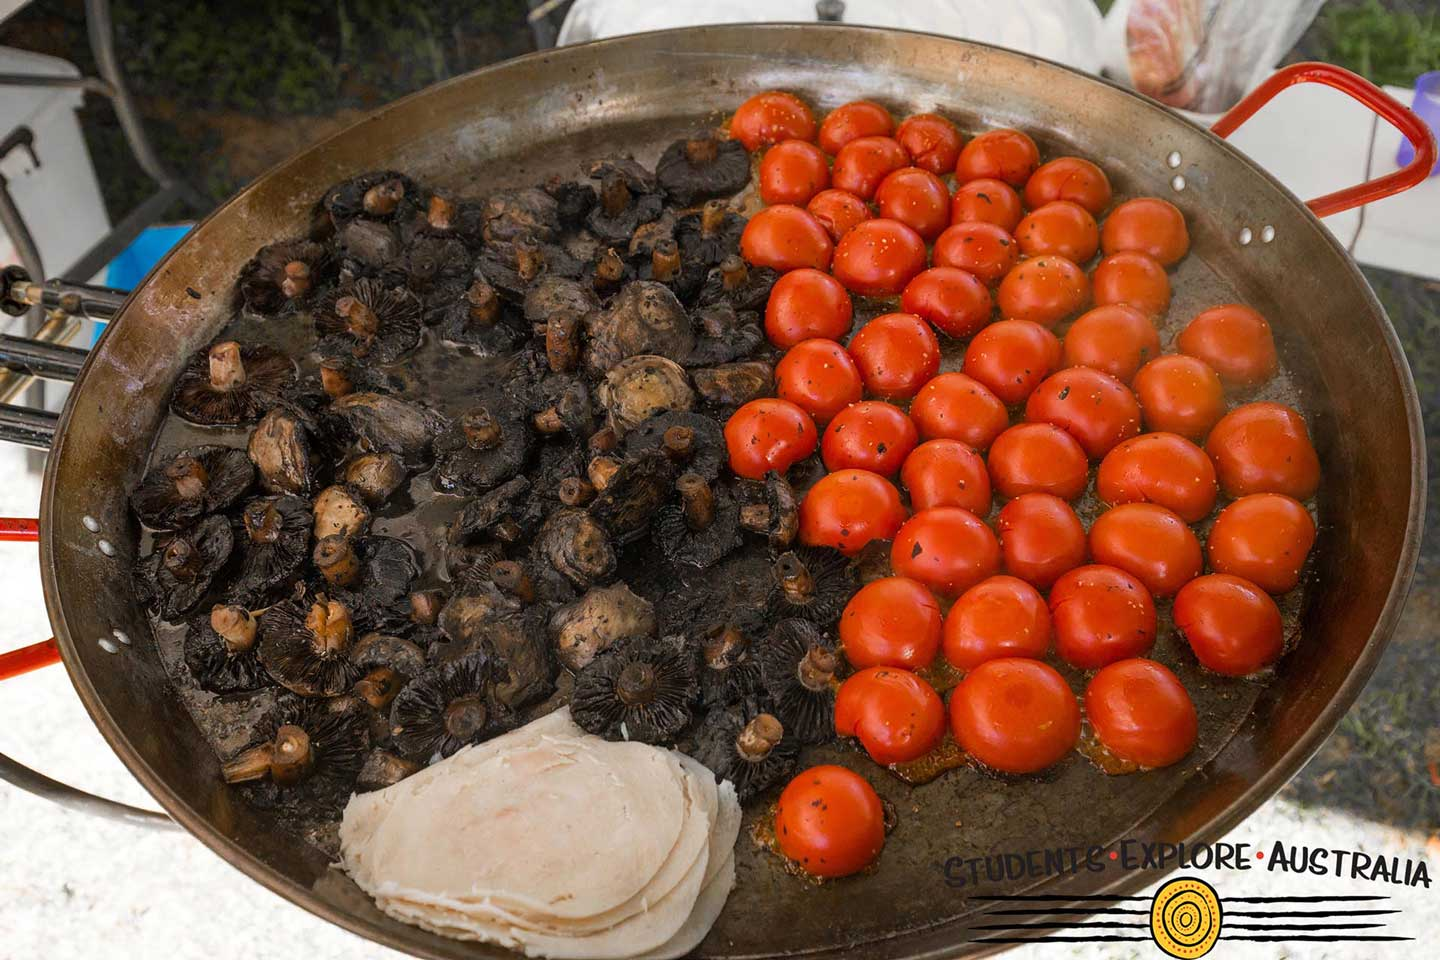 A plate of tomatoes, mushrooms, and dip